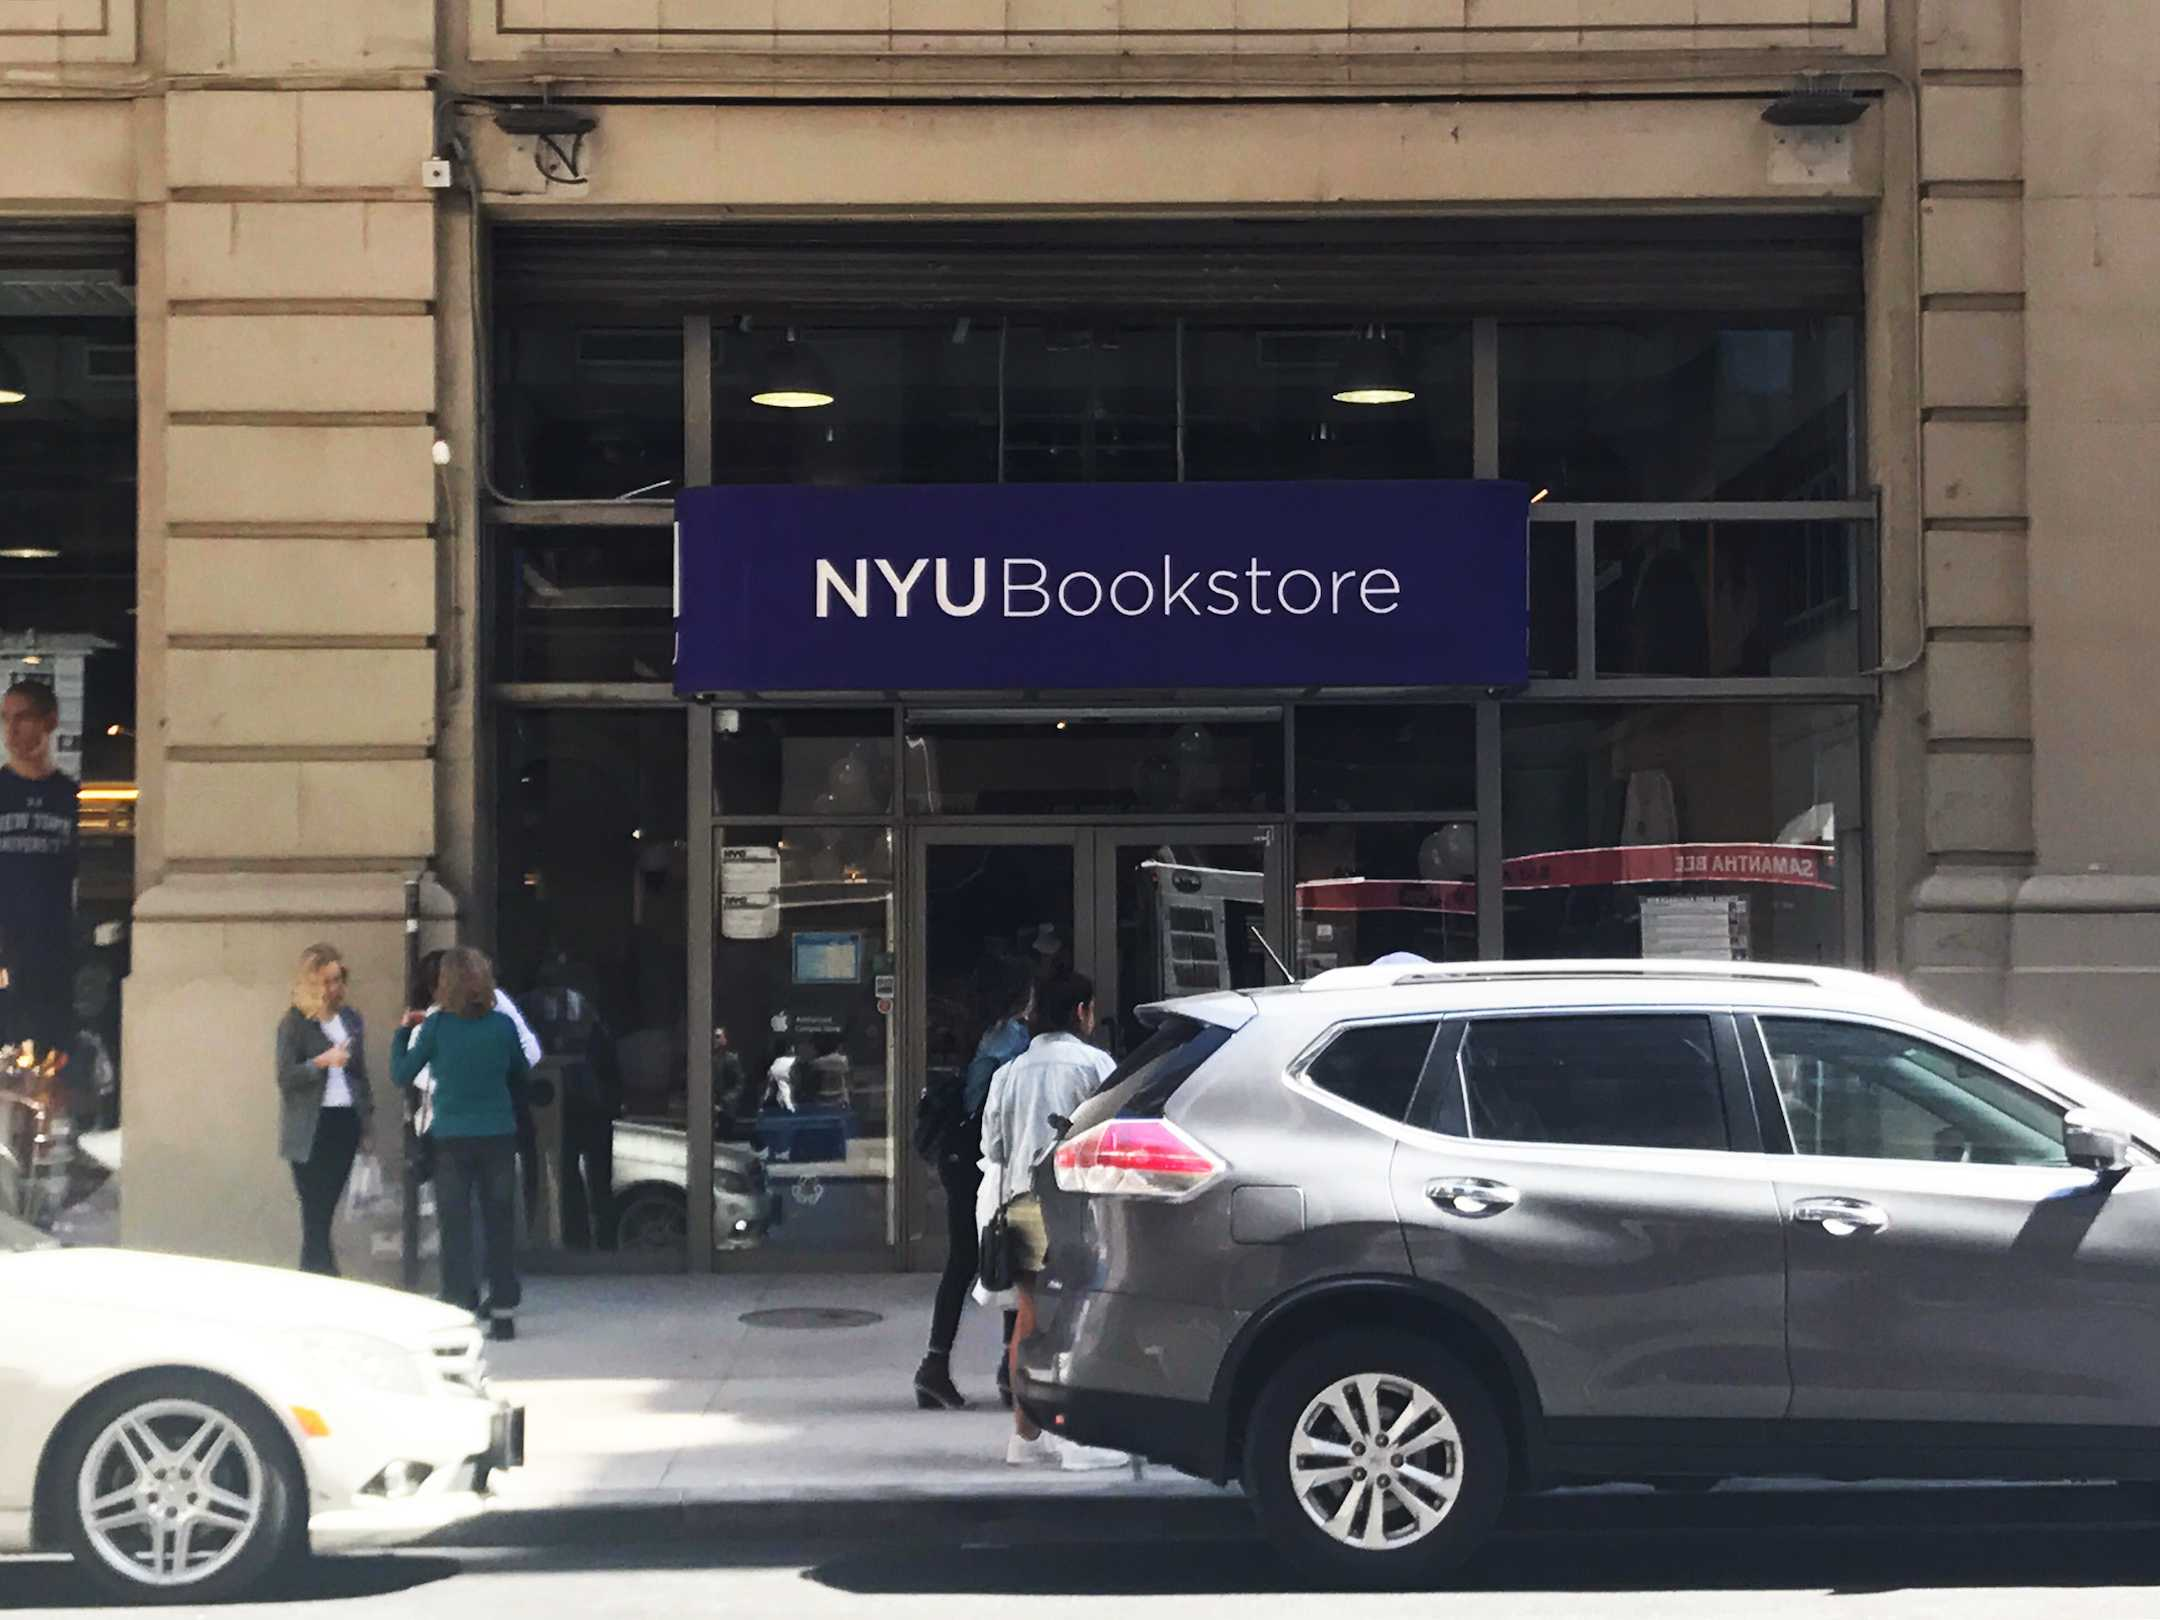 The NYU Bookstore may potentially be leased to Follett Higher Education as a part of NYU's affordability efforts. However, the union, UCATS Local 3882, is concerned with the takeover.